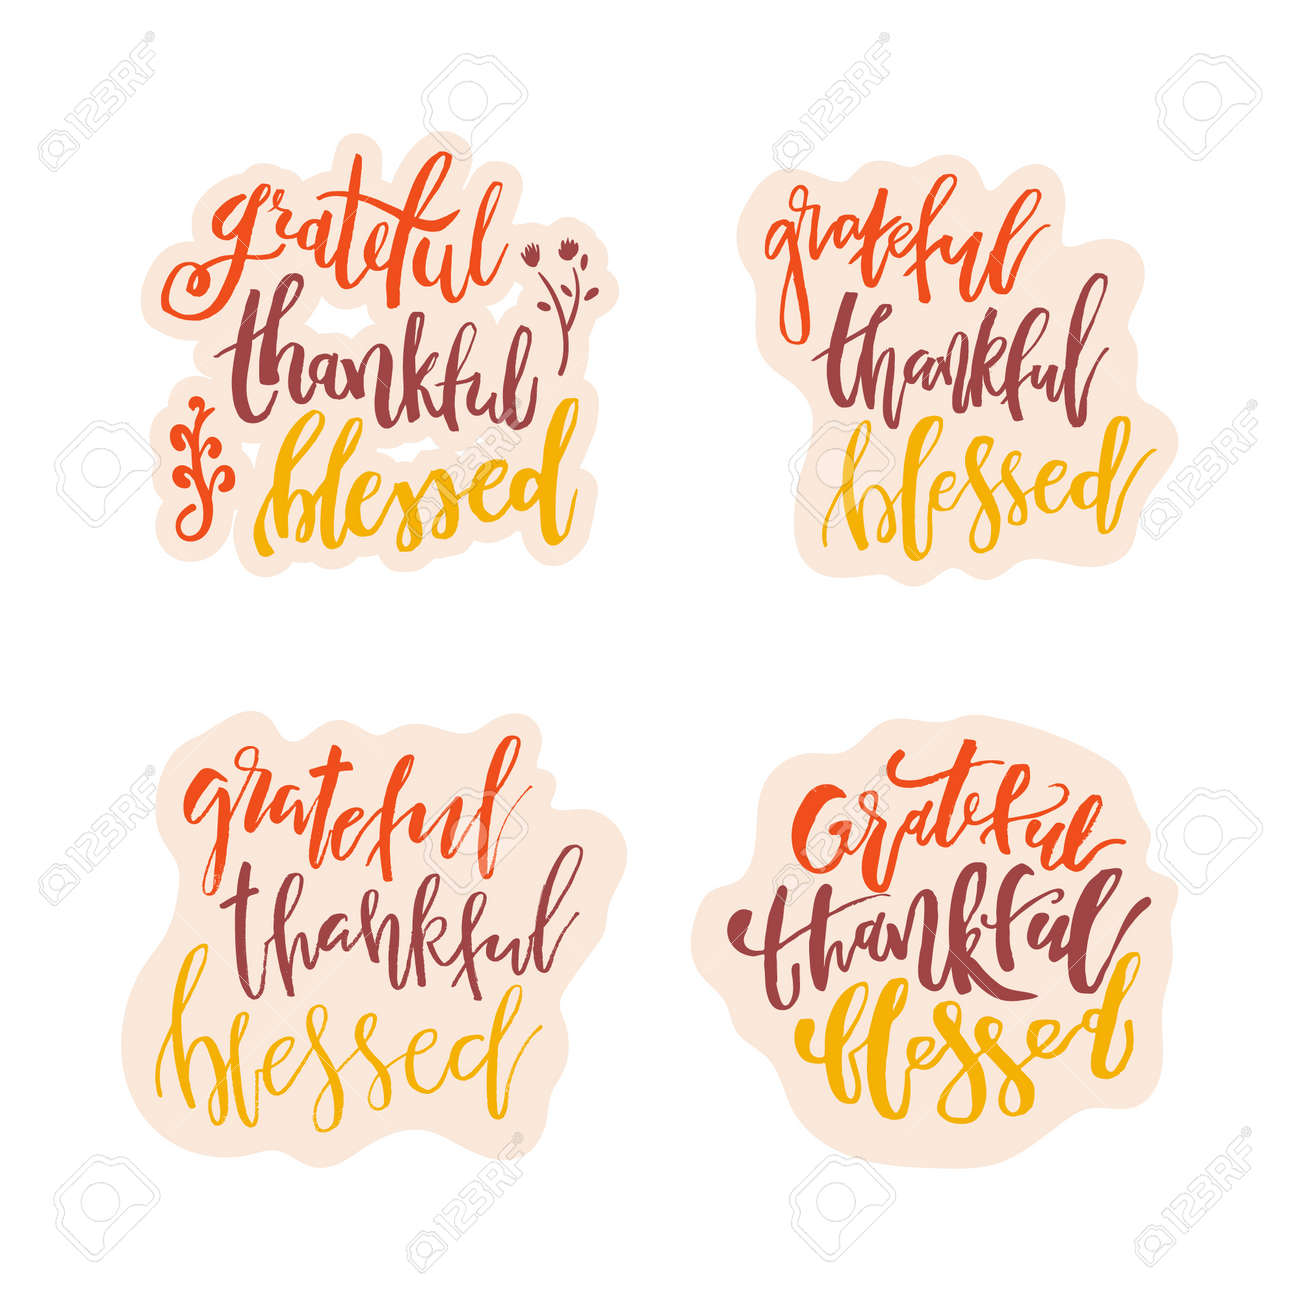 Grateful Thankful Blessed - Inspirational happy Thanksgiving day lettering quote for posters, t-shirt, prints, cards, banners. Christian god religious saying. Typographic vector slogan illustration - 131441912